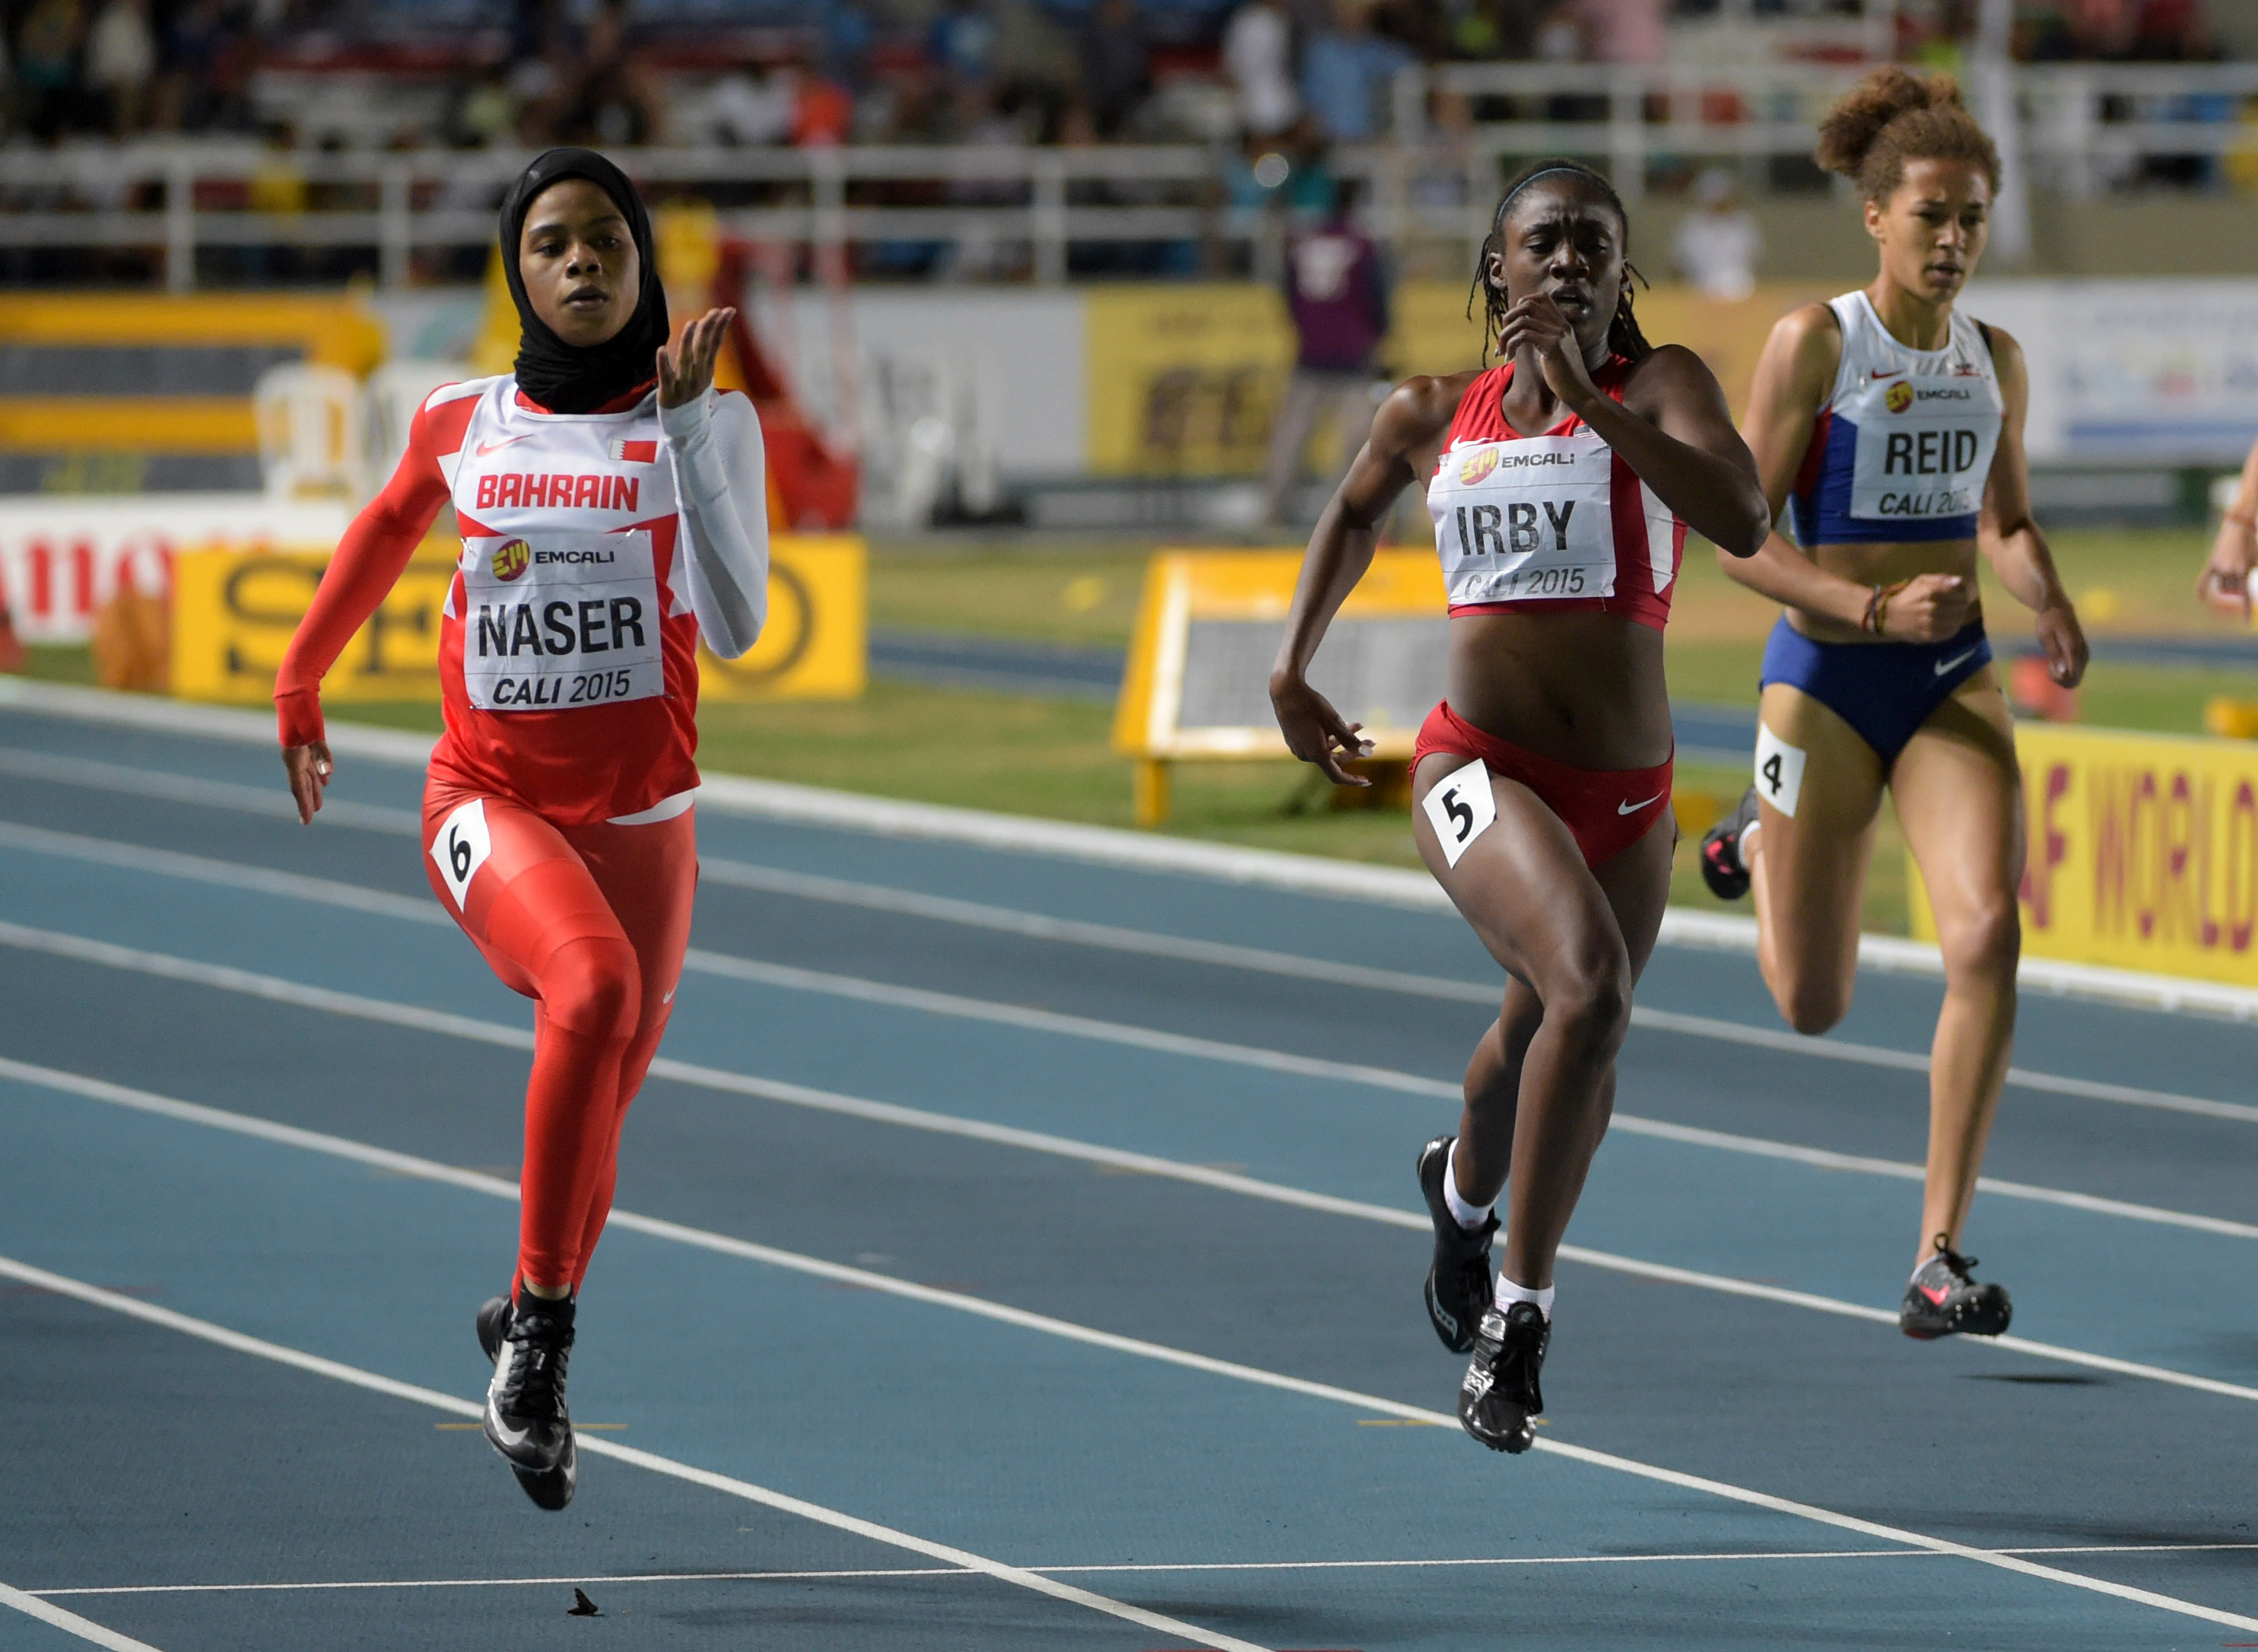 Salway Eid Naser (BRN) defeats Lynna Irby (USA) to win the women's 400 meters (Photo: Kirby Lee, USA TODAY Sports)